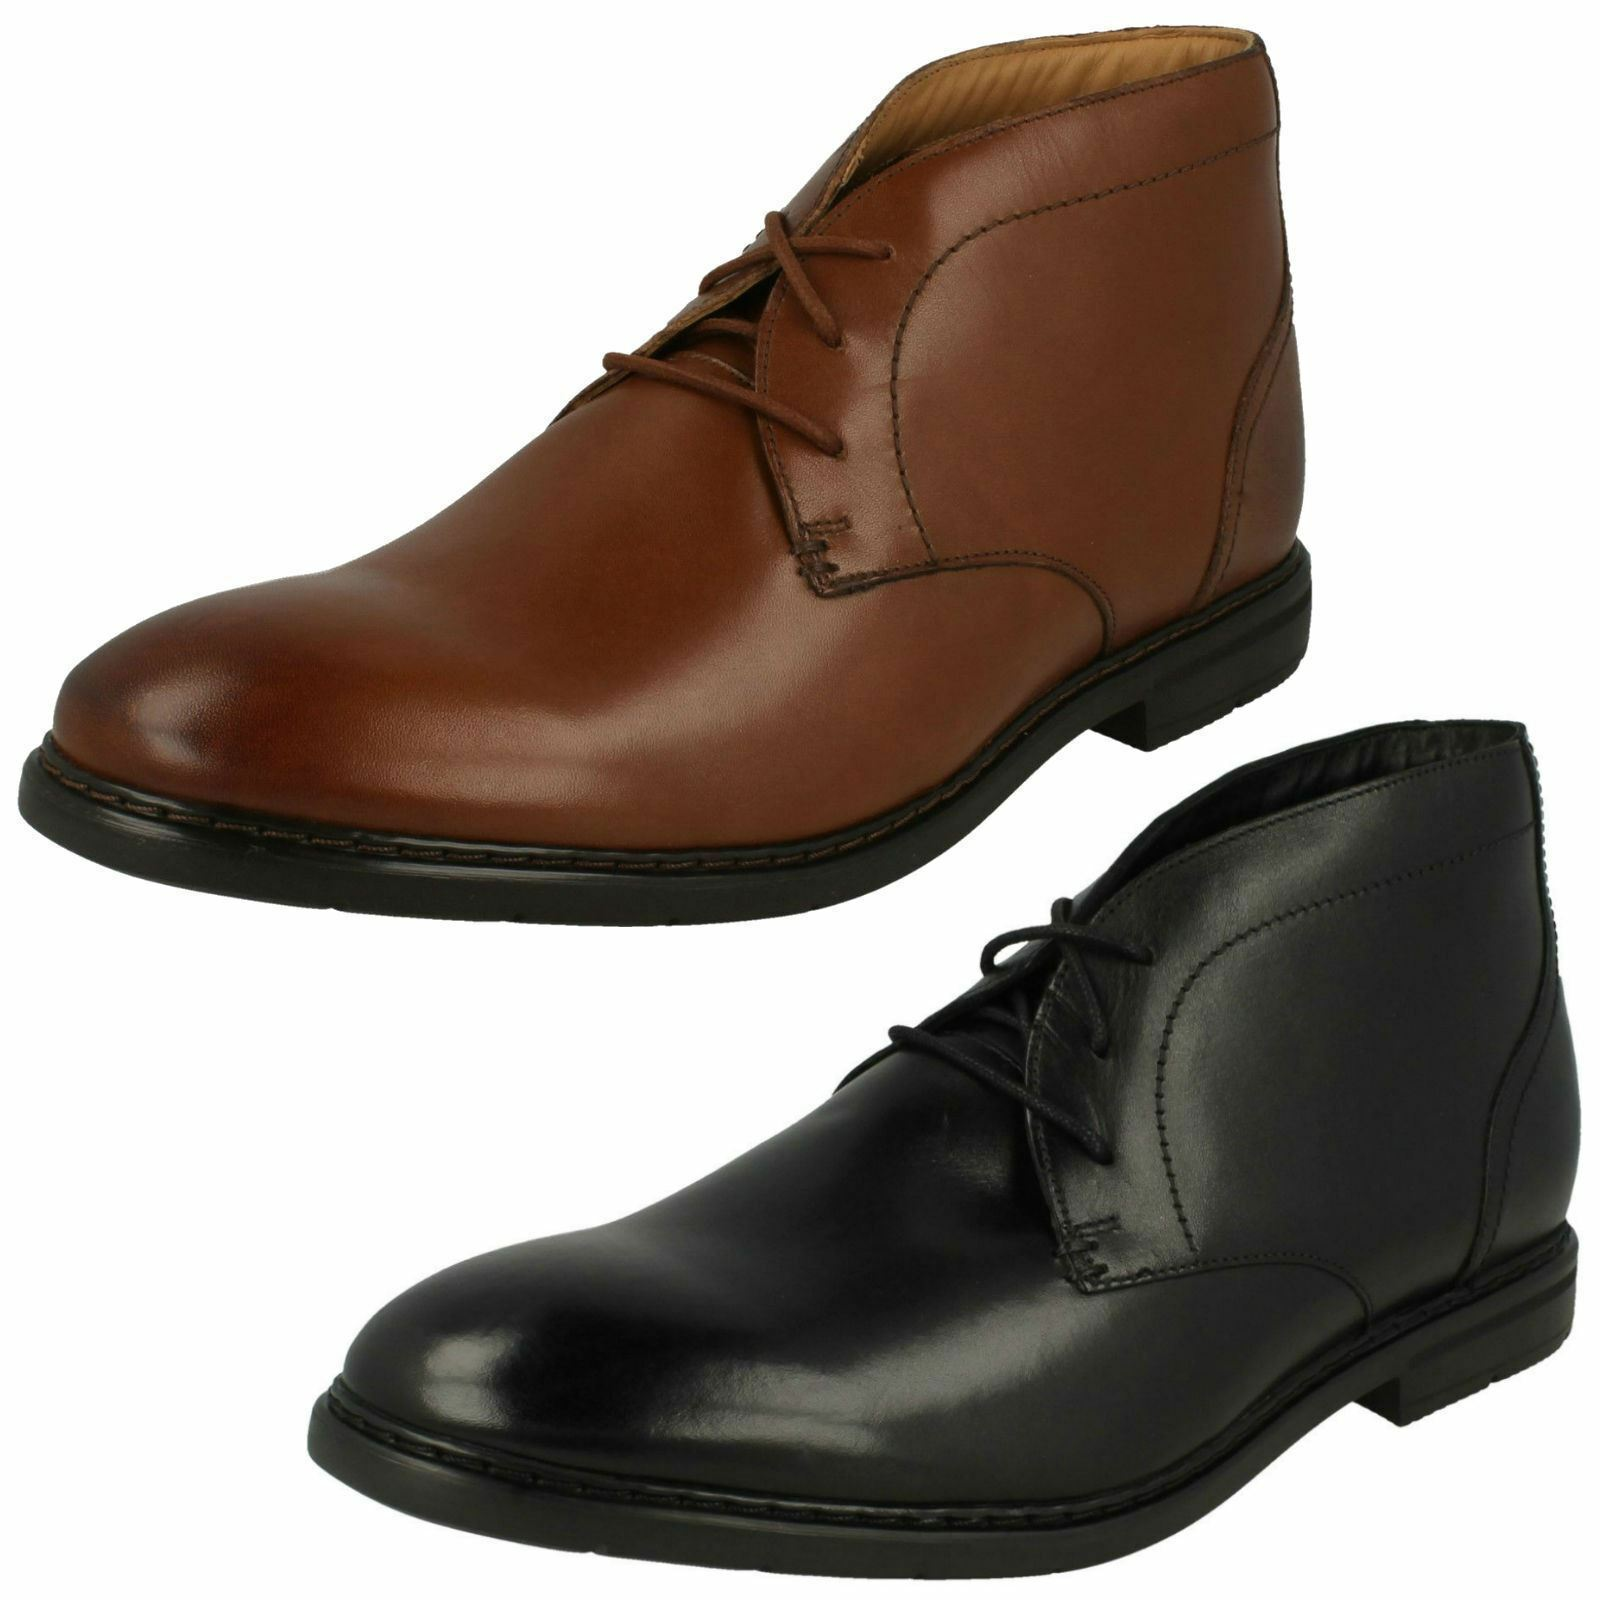 Mens Clarks Banbury Mid British Tan Or Black Leather Smart Lace Up Boots